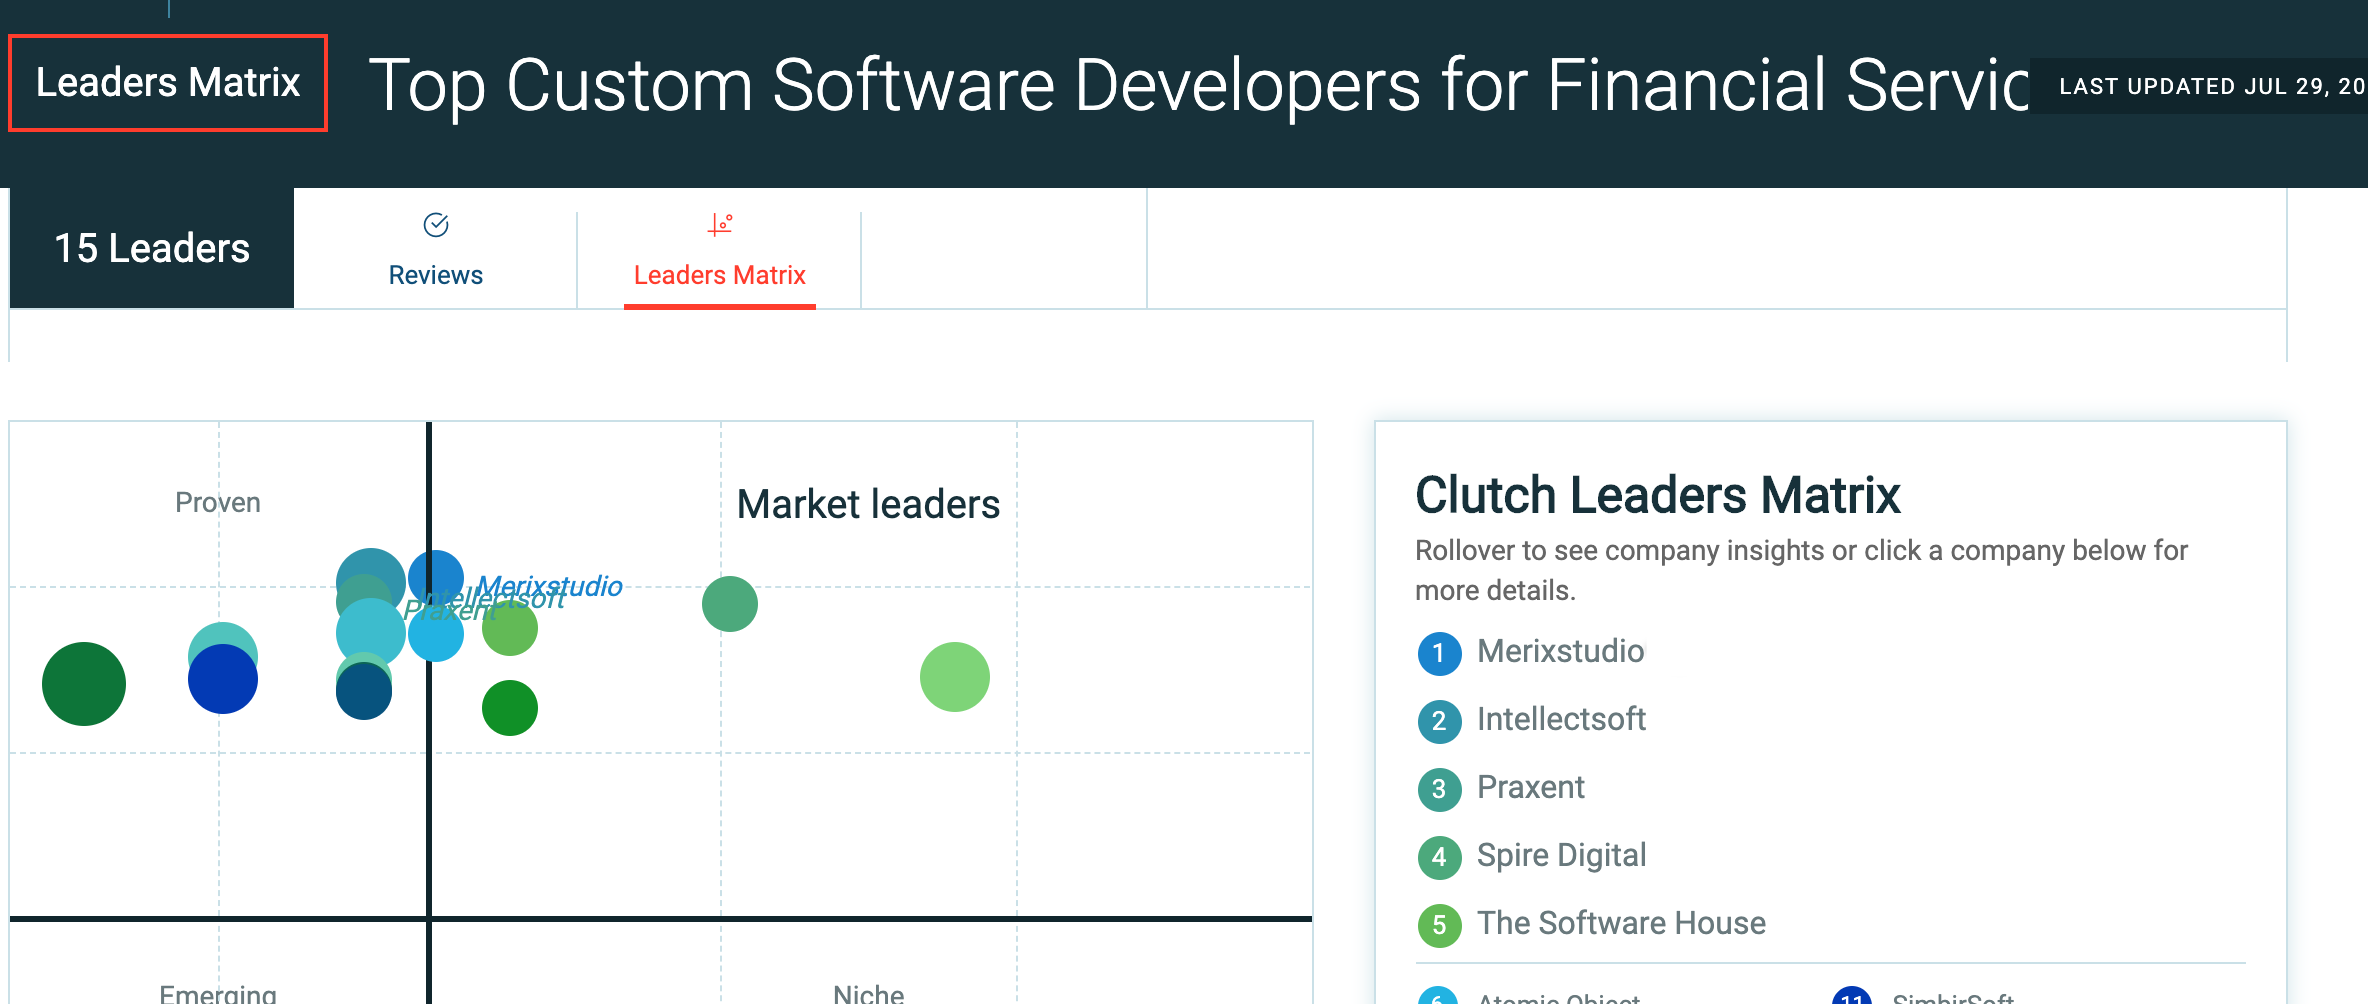 Clutch Top Custom Software Developers for Financial Services